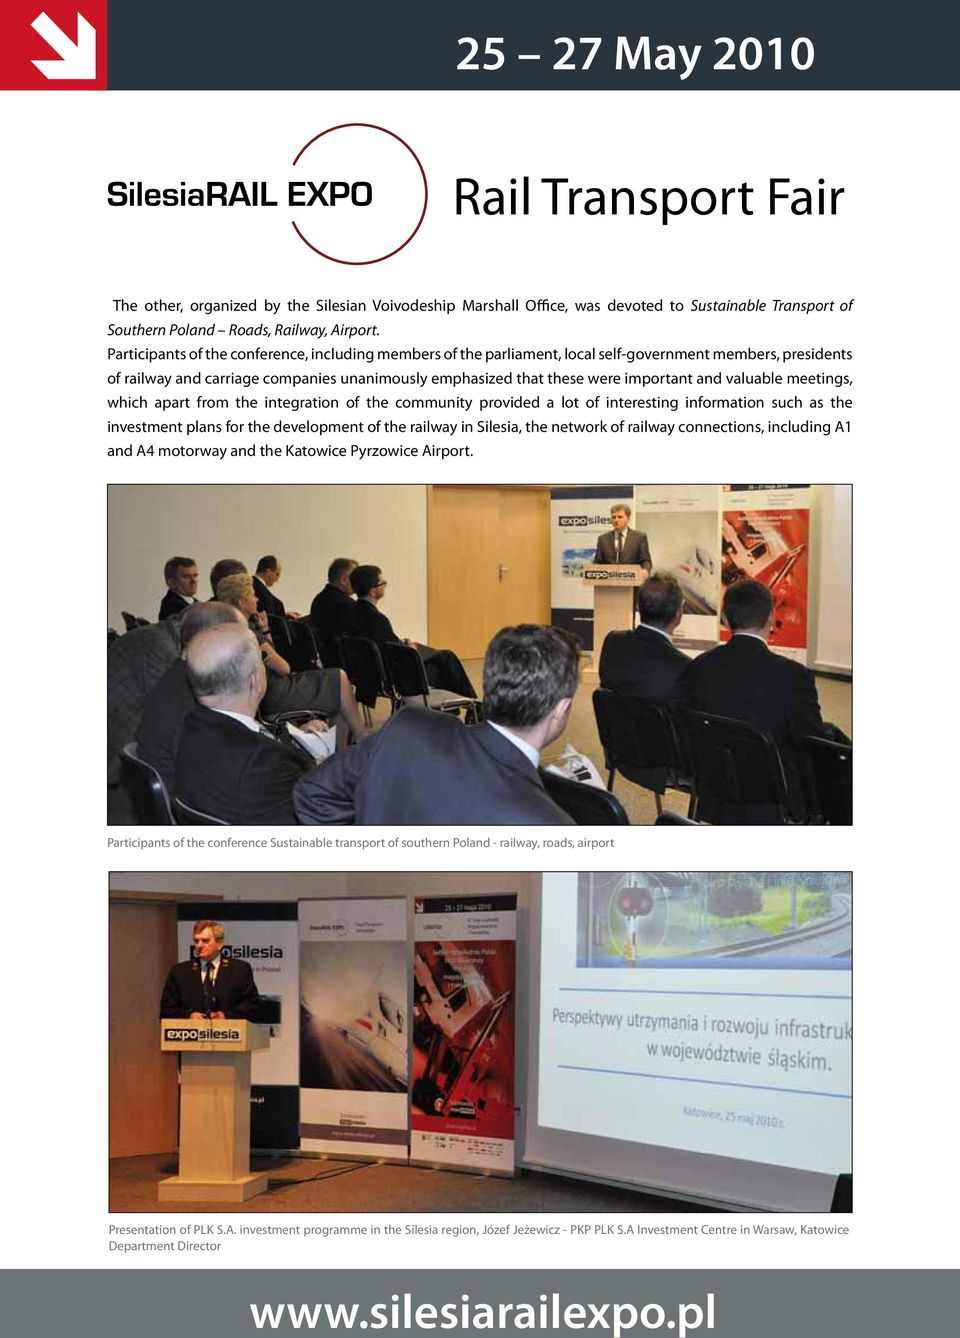 valuable meetings, which apart from the integration of the community provided a lot of interesting information such as the investment plans for the development of the railway in Silesia, the network